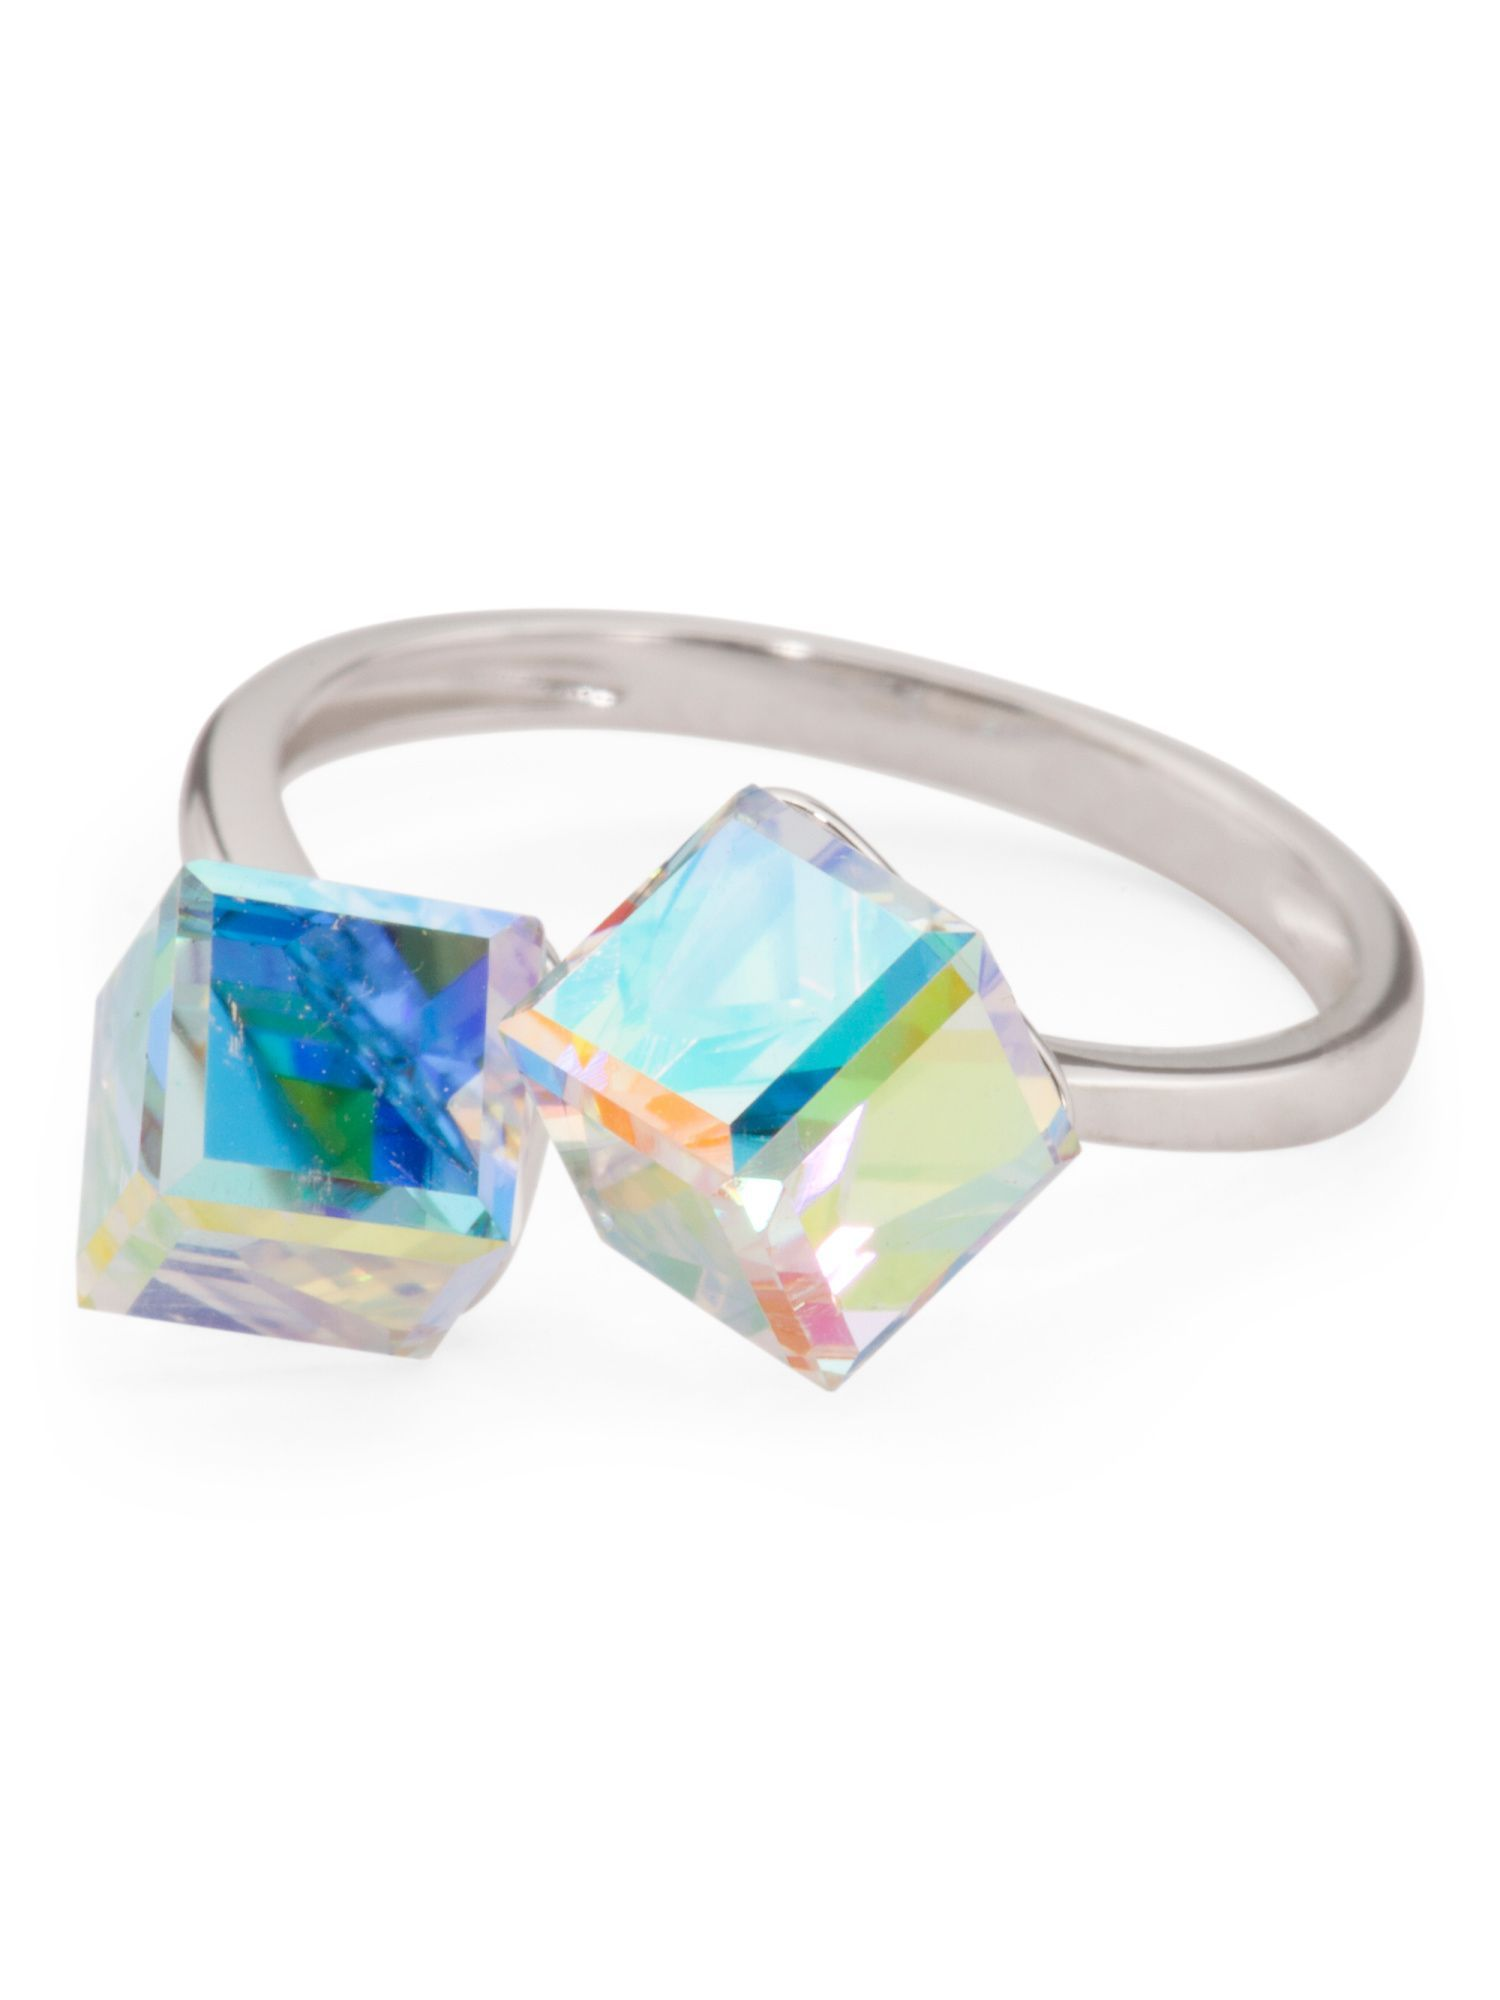 cbf6e06a28b21 Sterling Silver Swarovski Crystal Cube Ring | Products | Rings ...